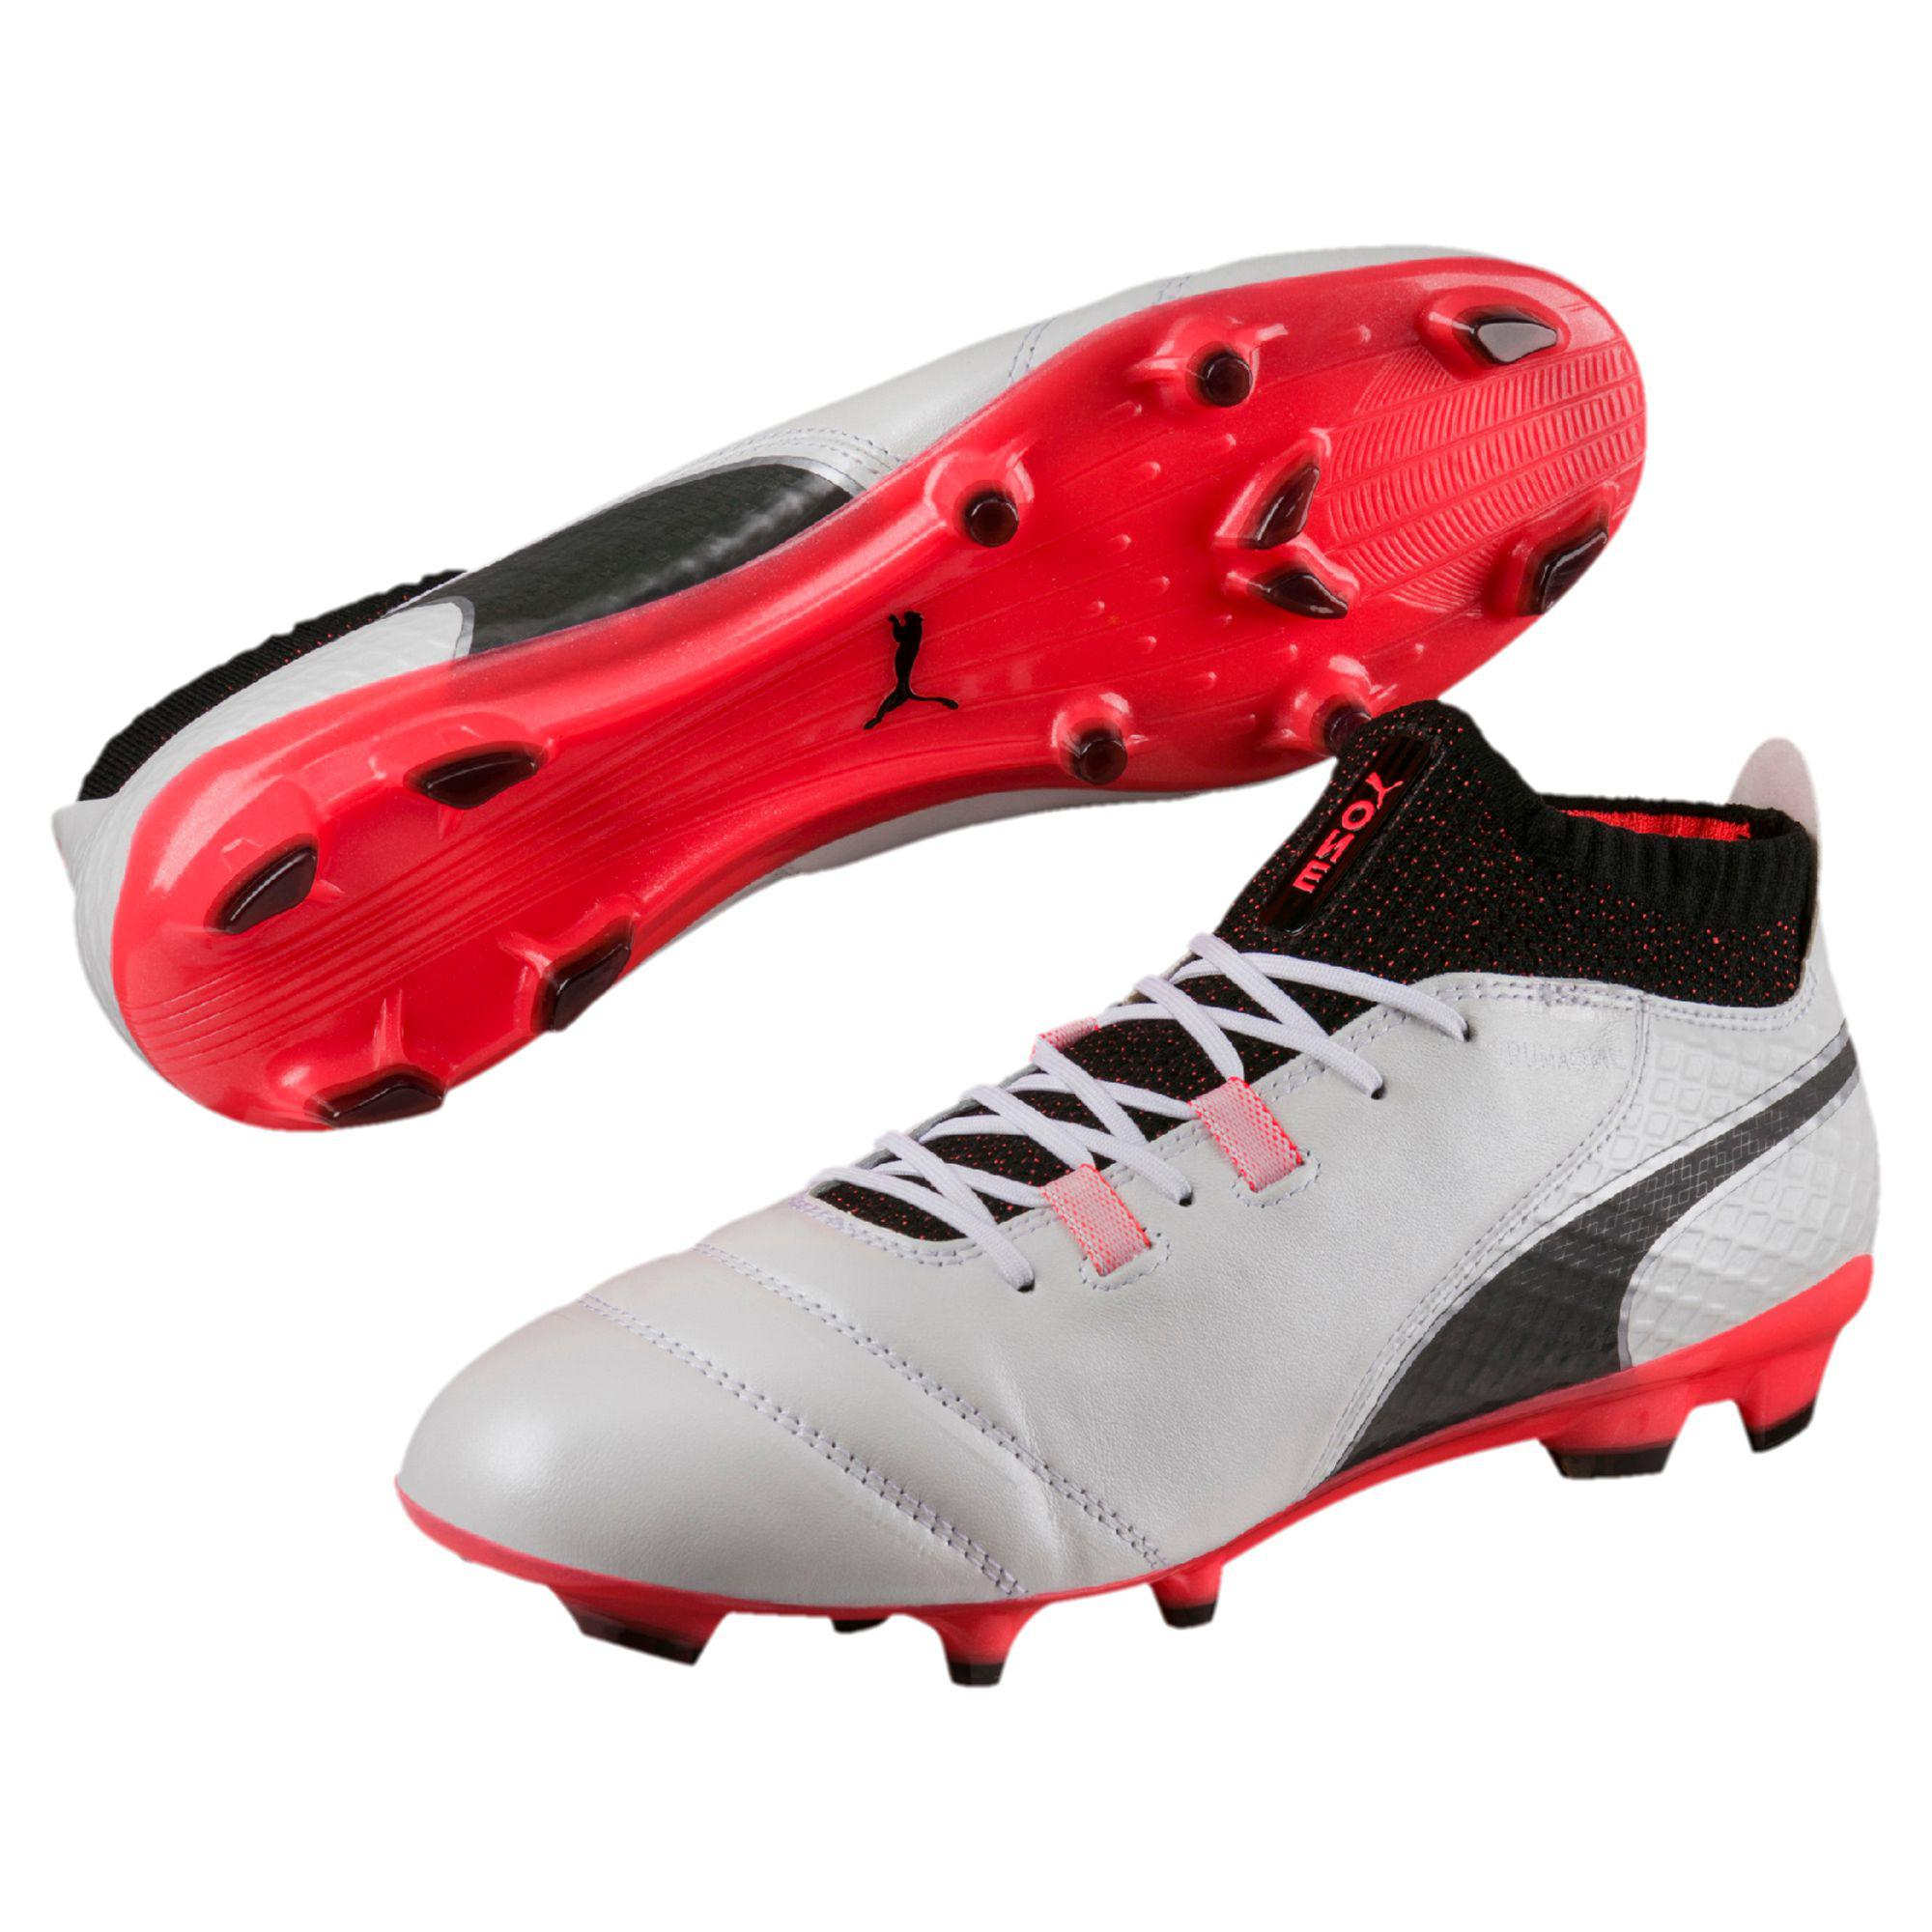 Lyst - PUMA One 17.1 Fg Men s Firm Ground Soccer Cleats for Men 952353b6e